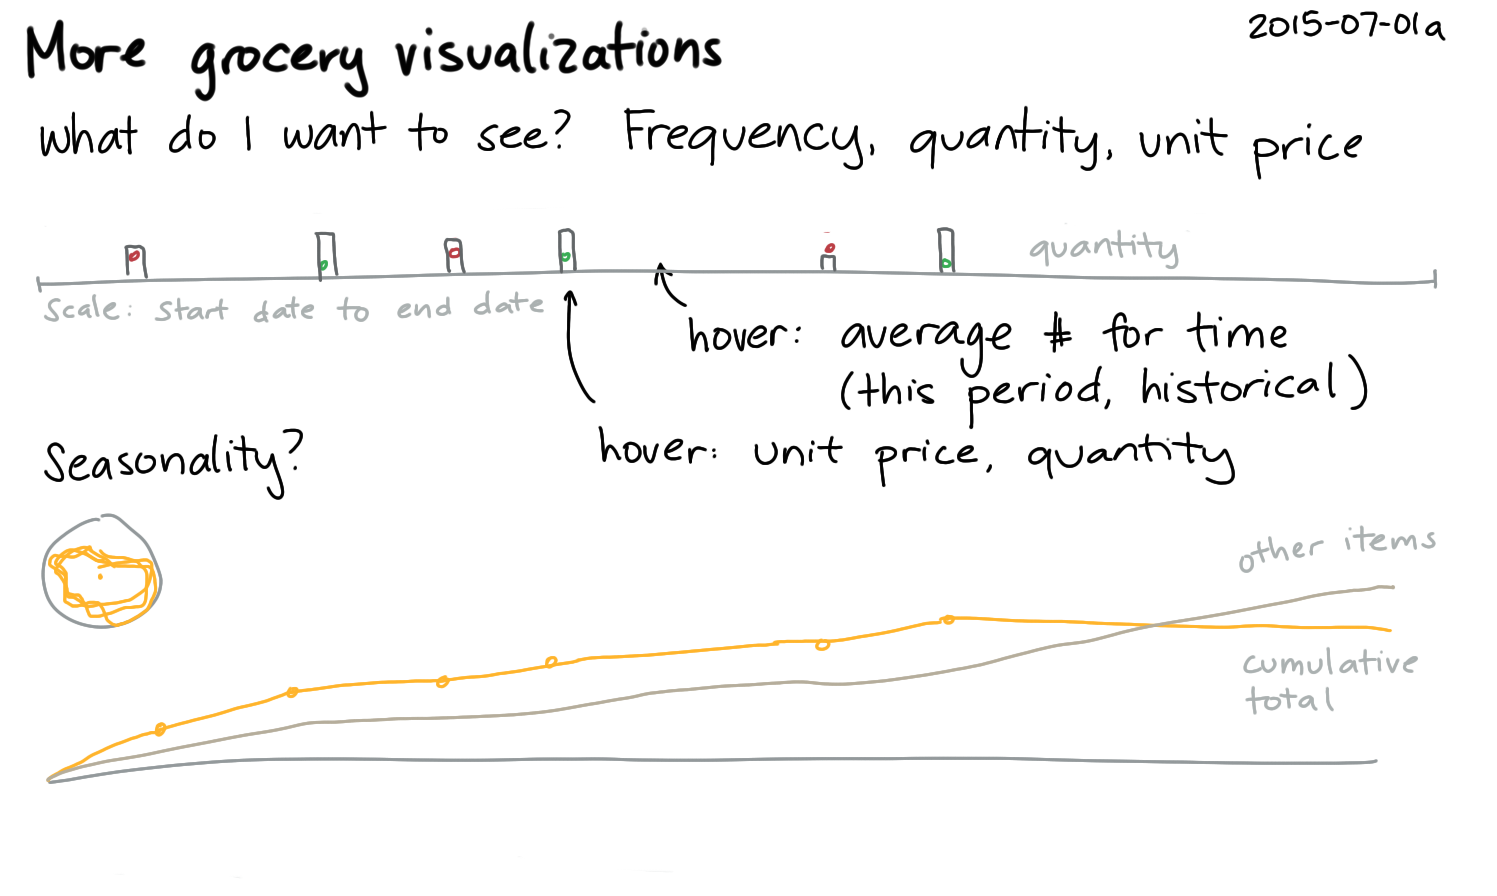 2015-07-01a More grocery visualizations -- index card #visualization #quantified.png